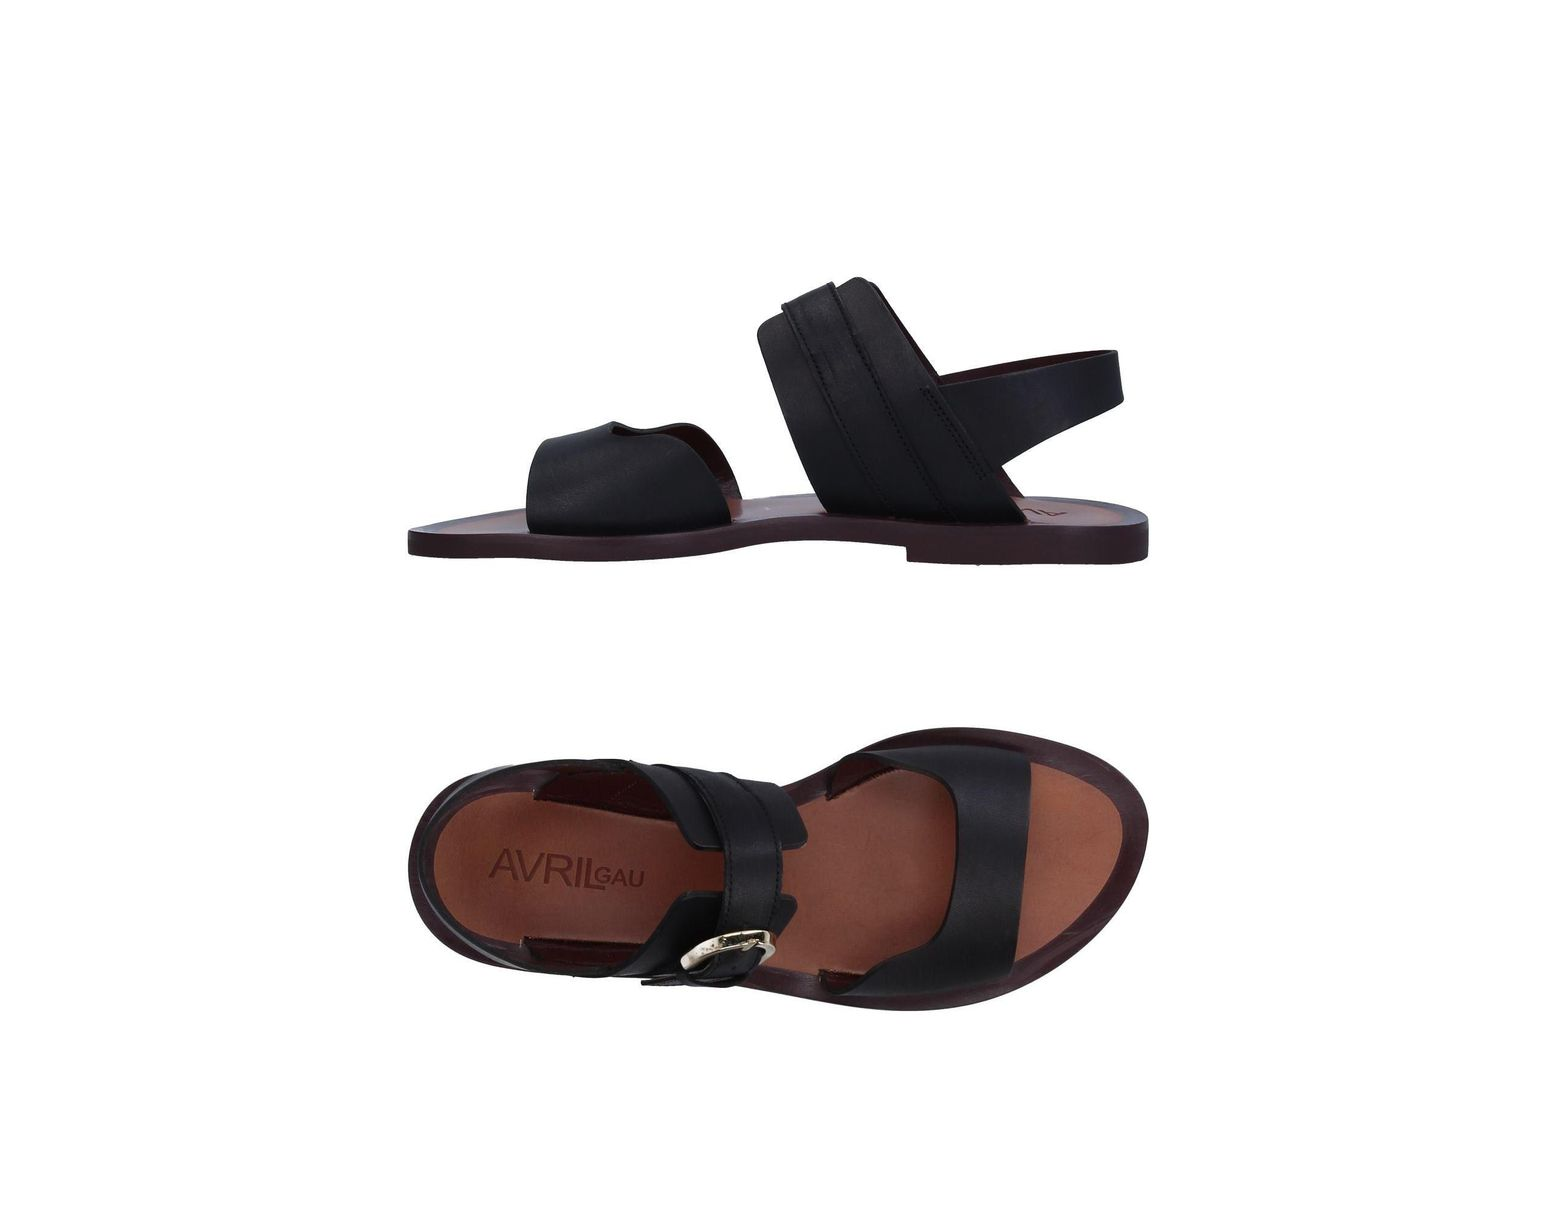 b2467df25ac02 Avril Gau Sandals in Black - Lyst